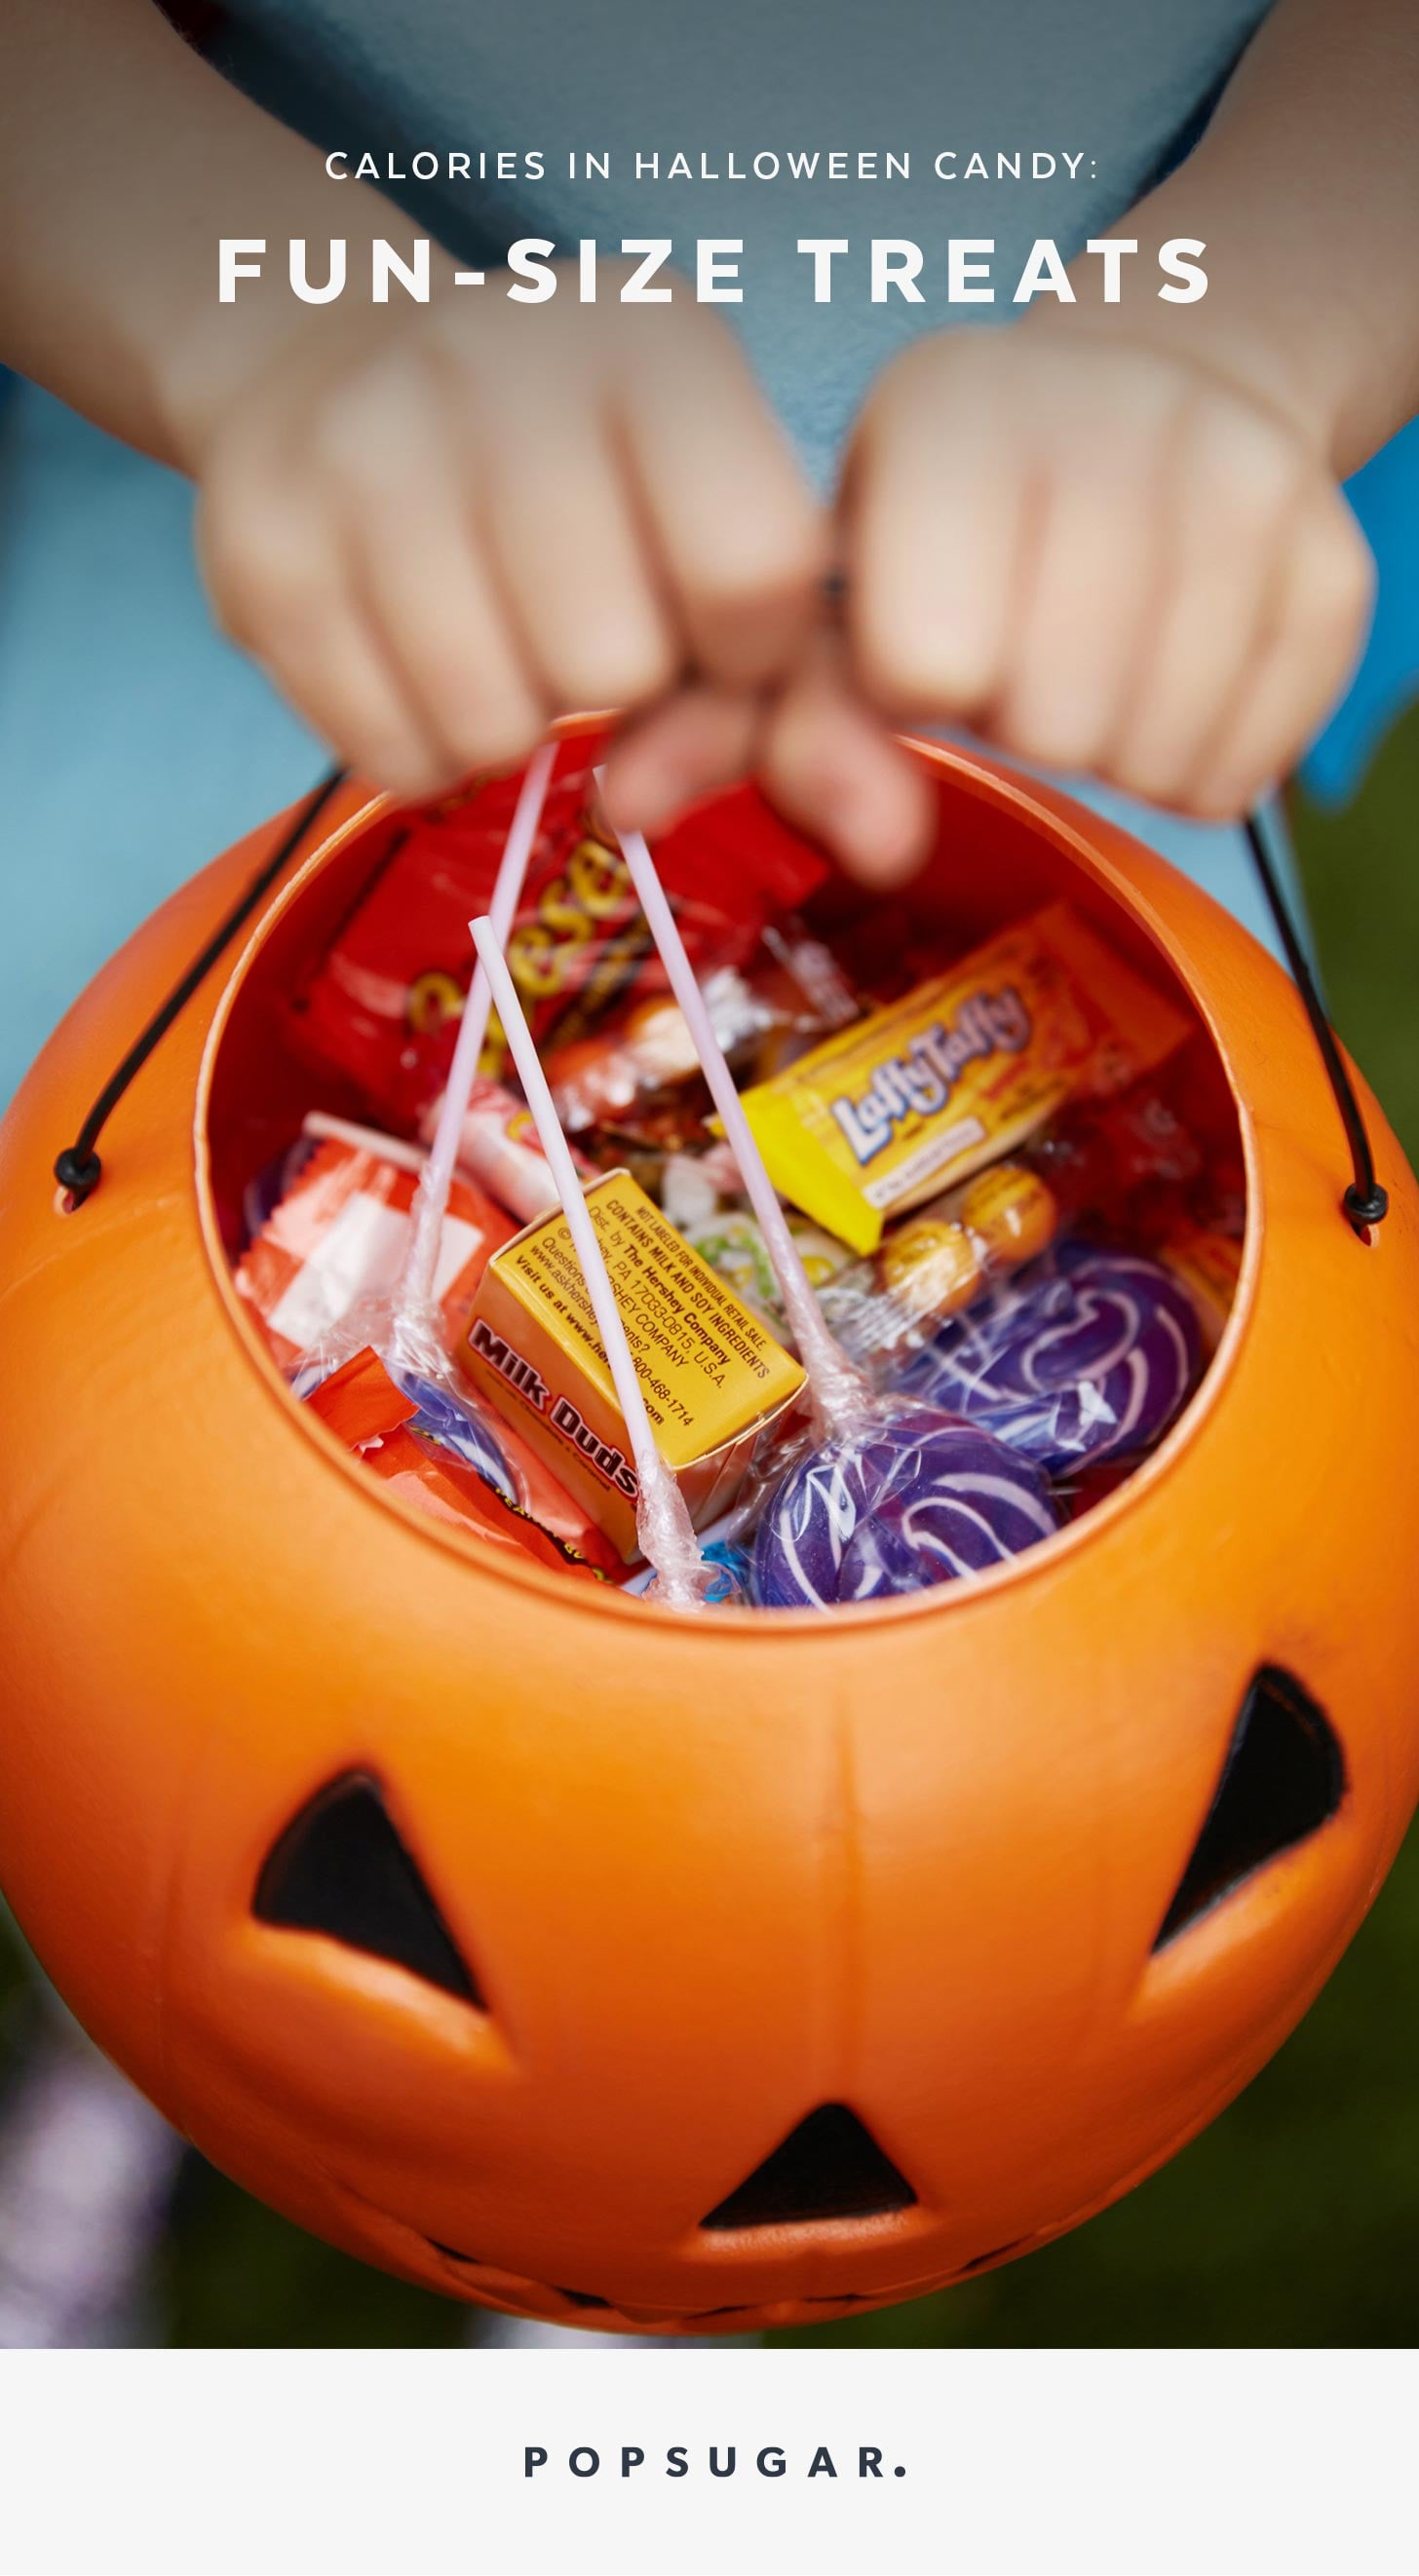 calories in halloween candy: fun size treats | popsugar fitness